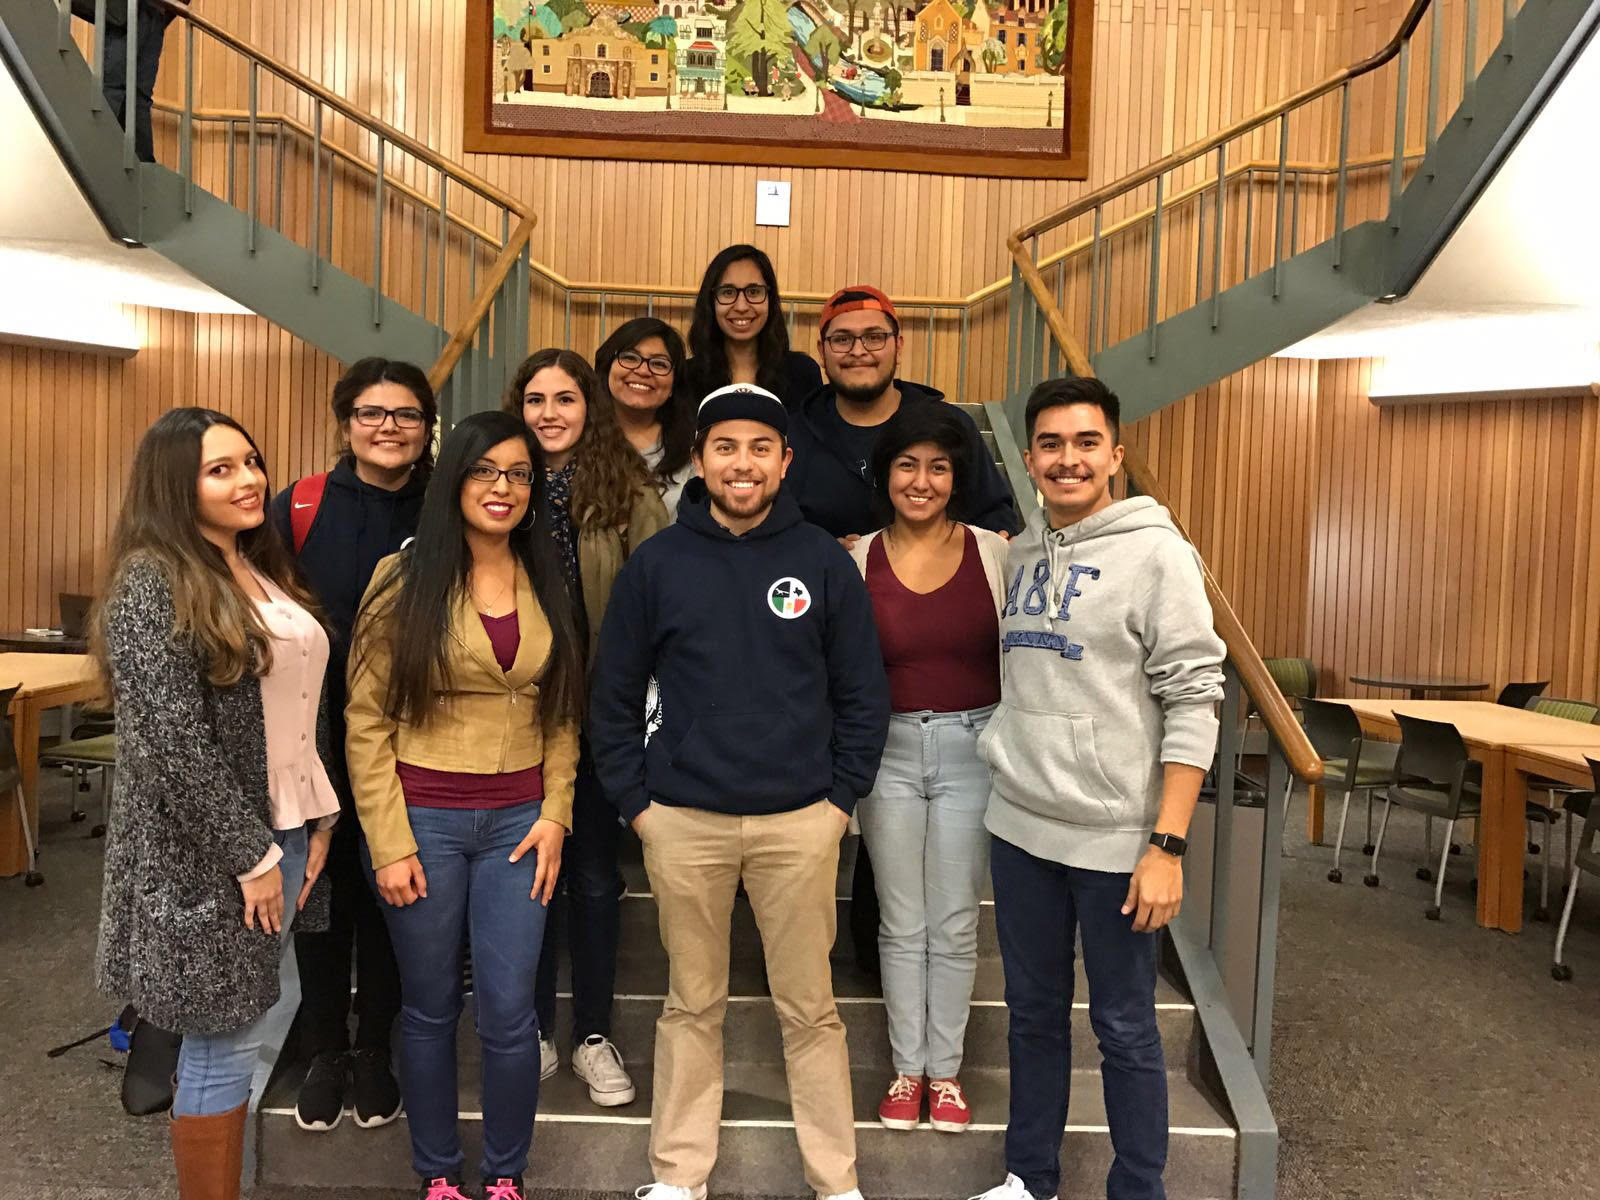 UTSA has the second largest number of DACA college students in the nation.